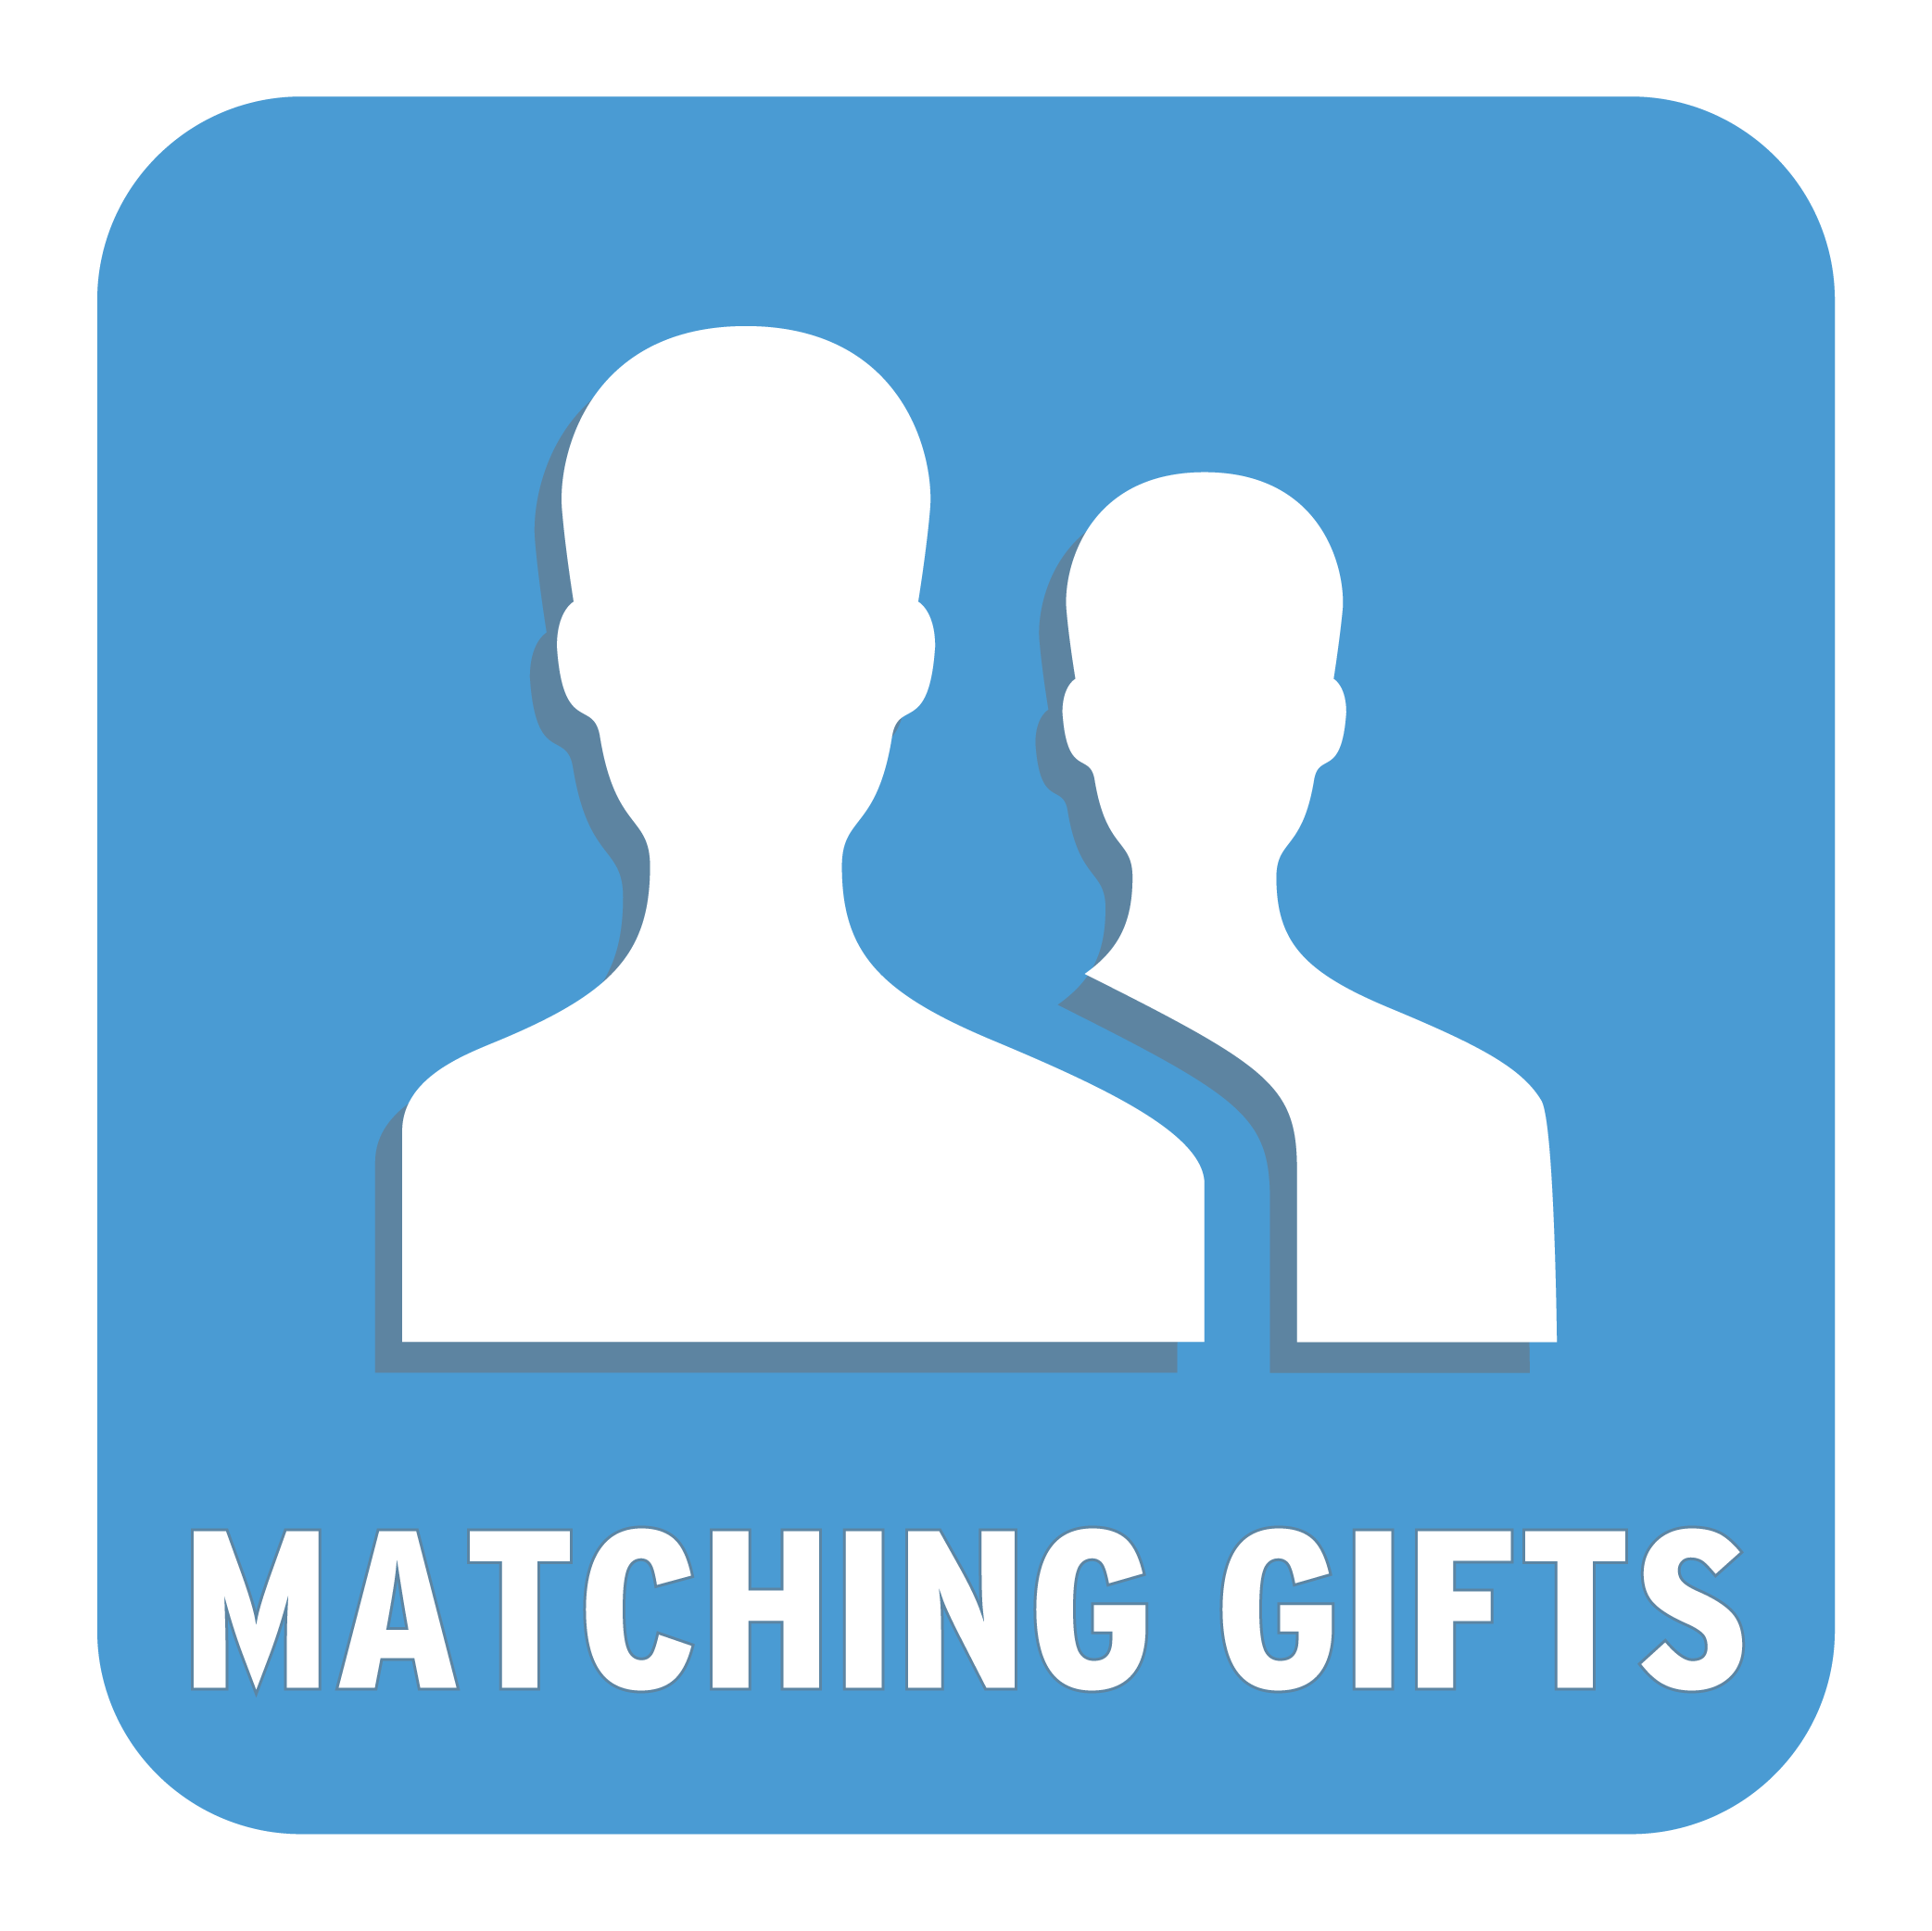 Ways to Give (Matching Gifts)